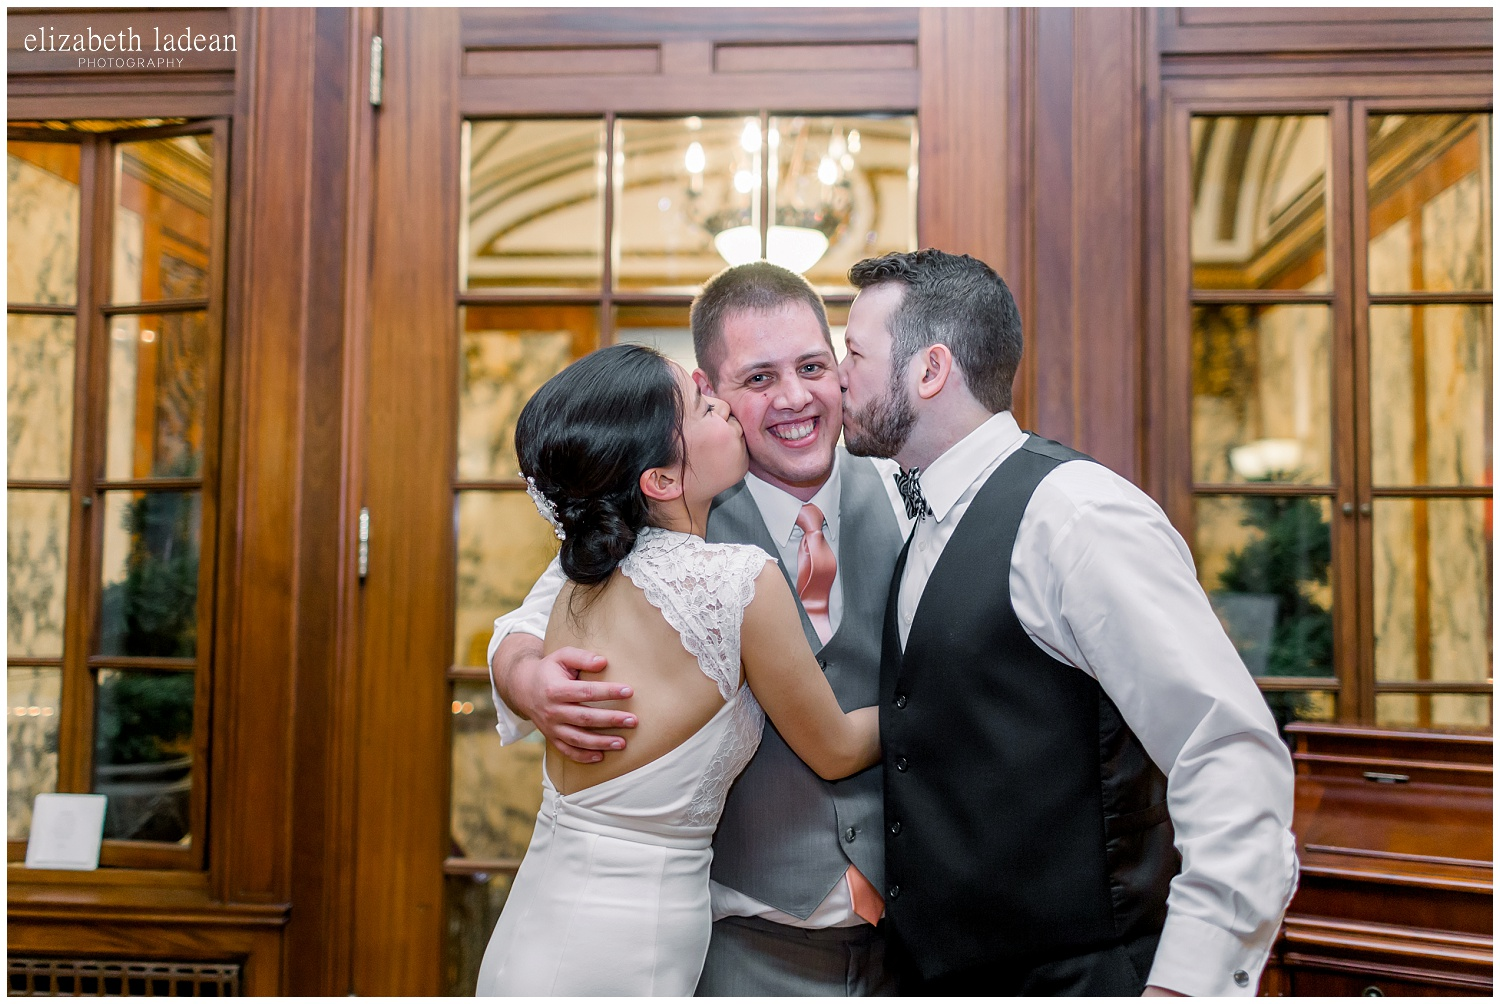 -behind-the-scenes-of-a-wedding-photographer-2018-elizabeth-ladean-photography-photo_3526.jpg